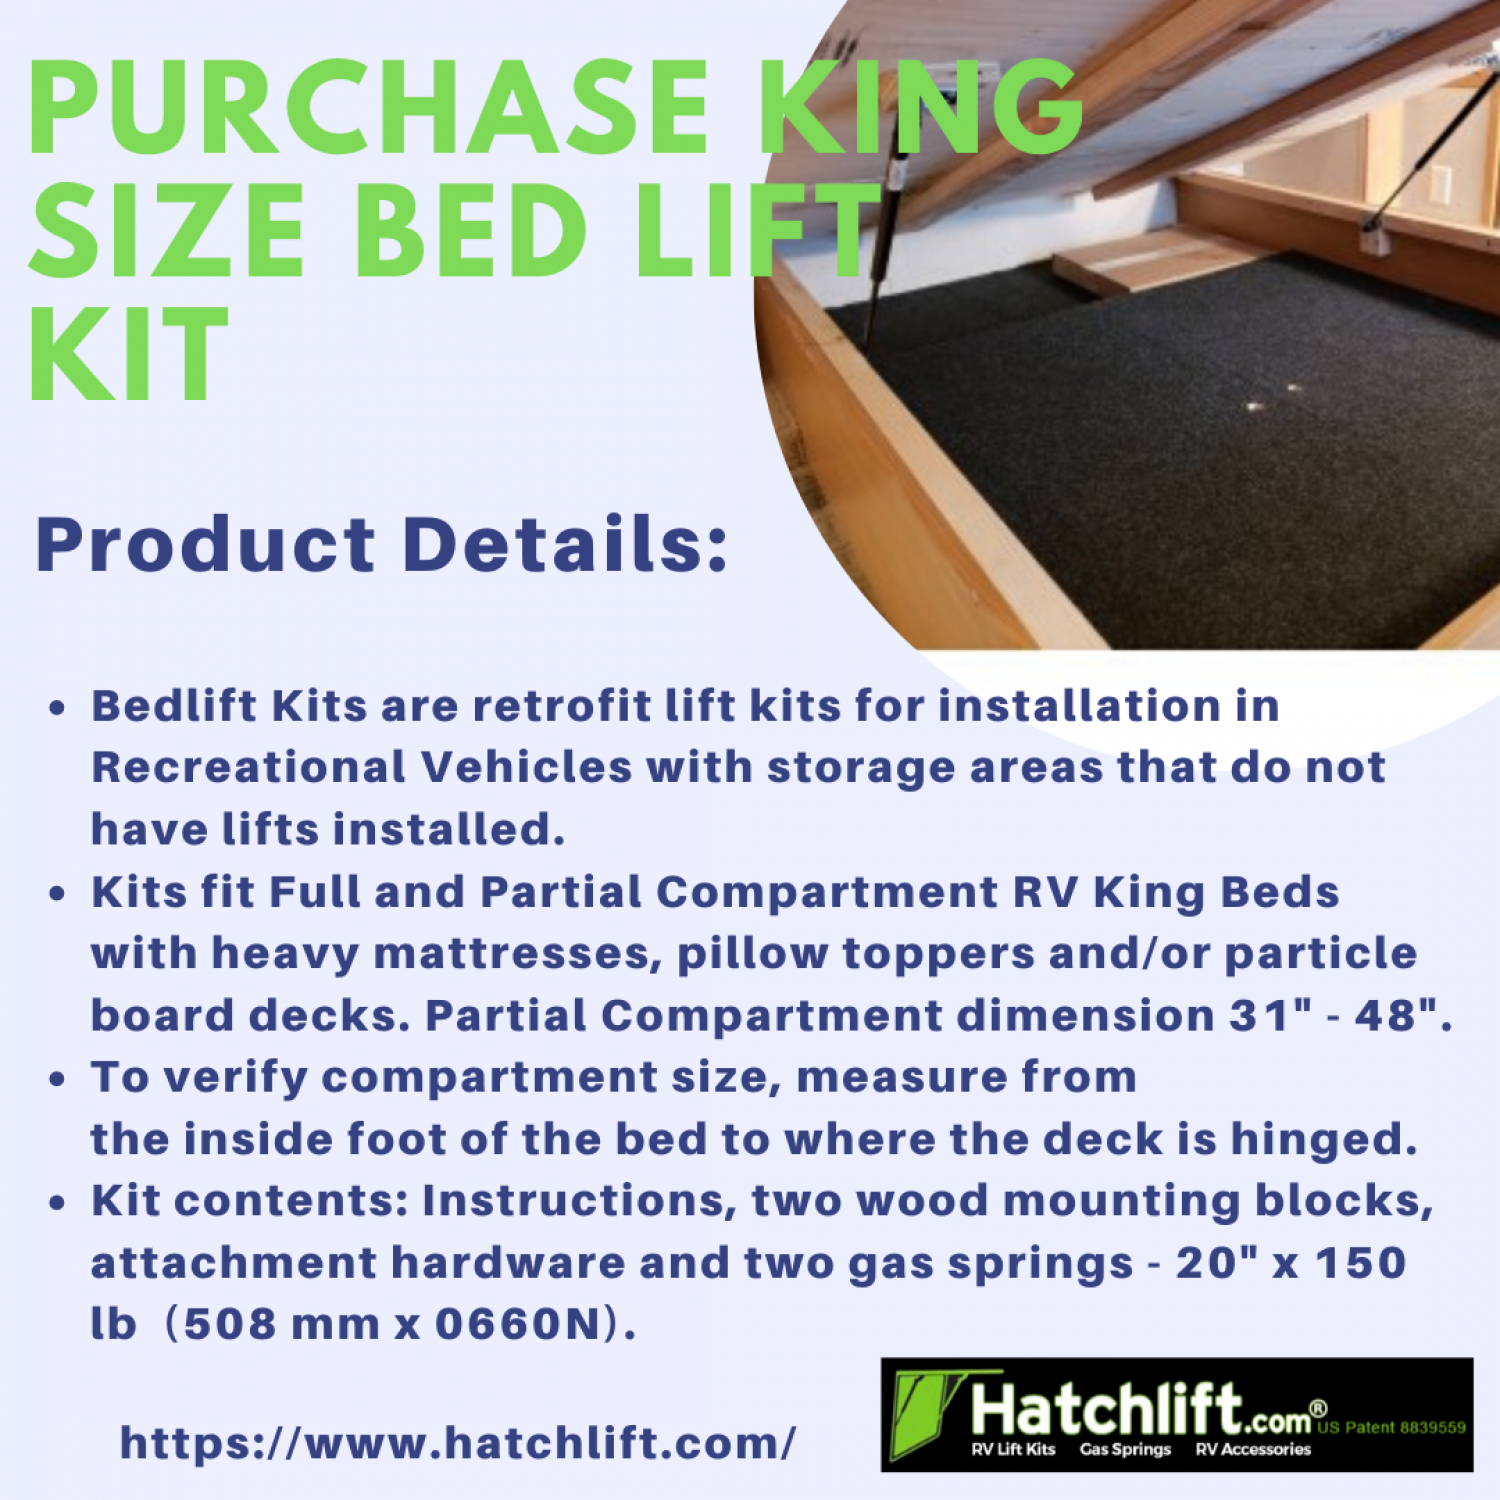 Purchase King Size Bed Lift Kit Infographic